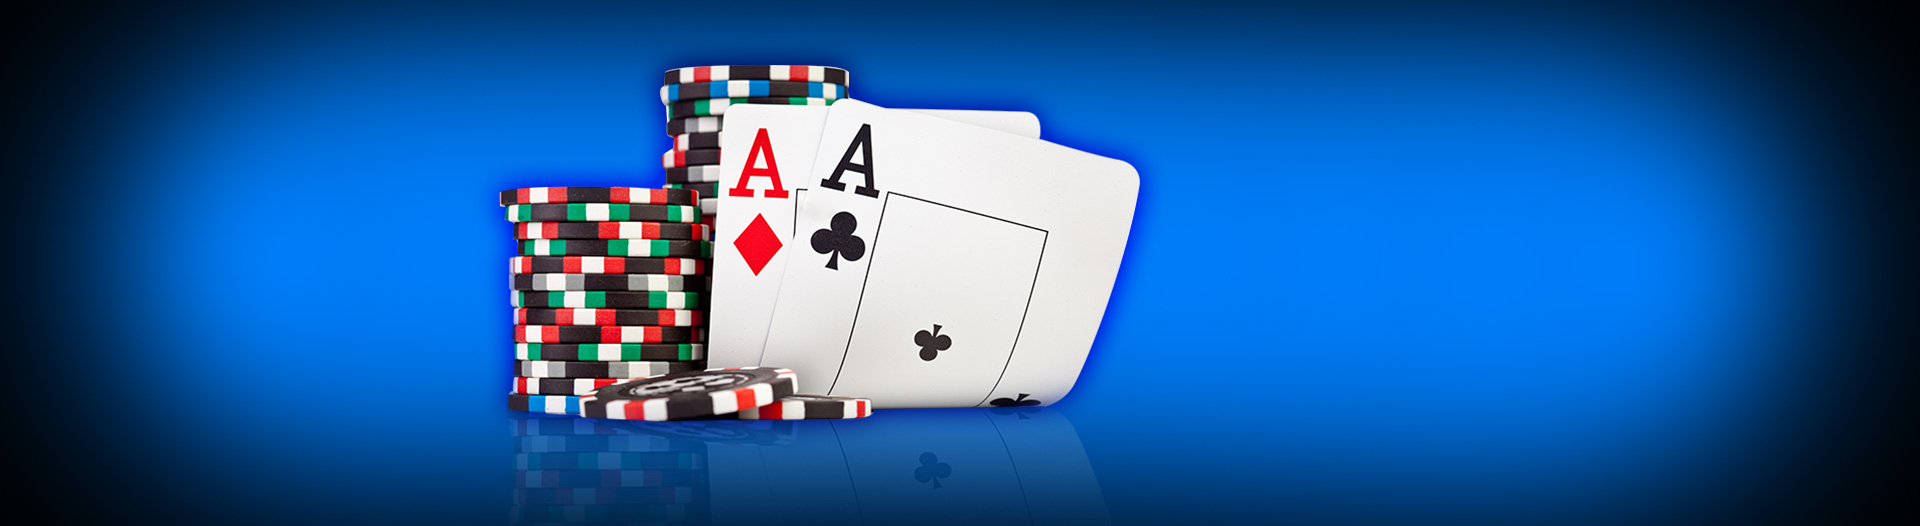 free poker software